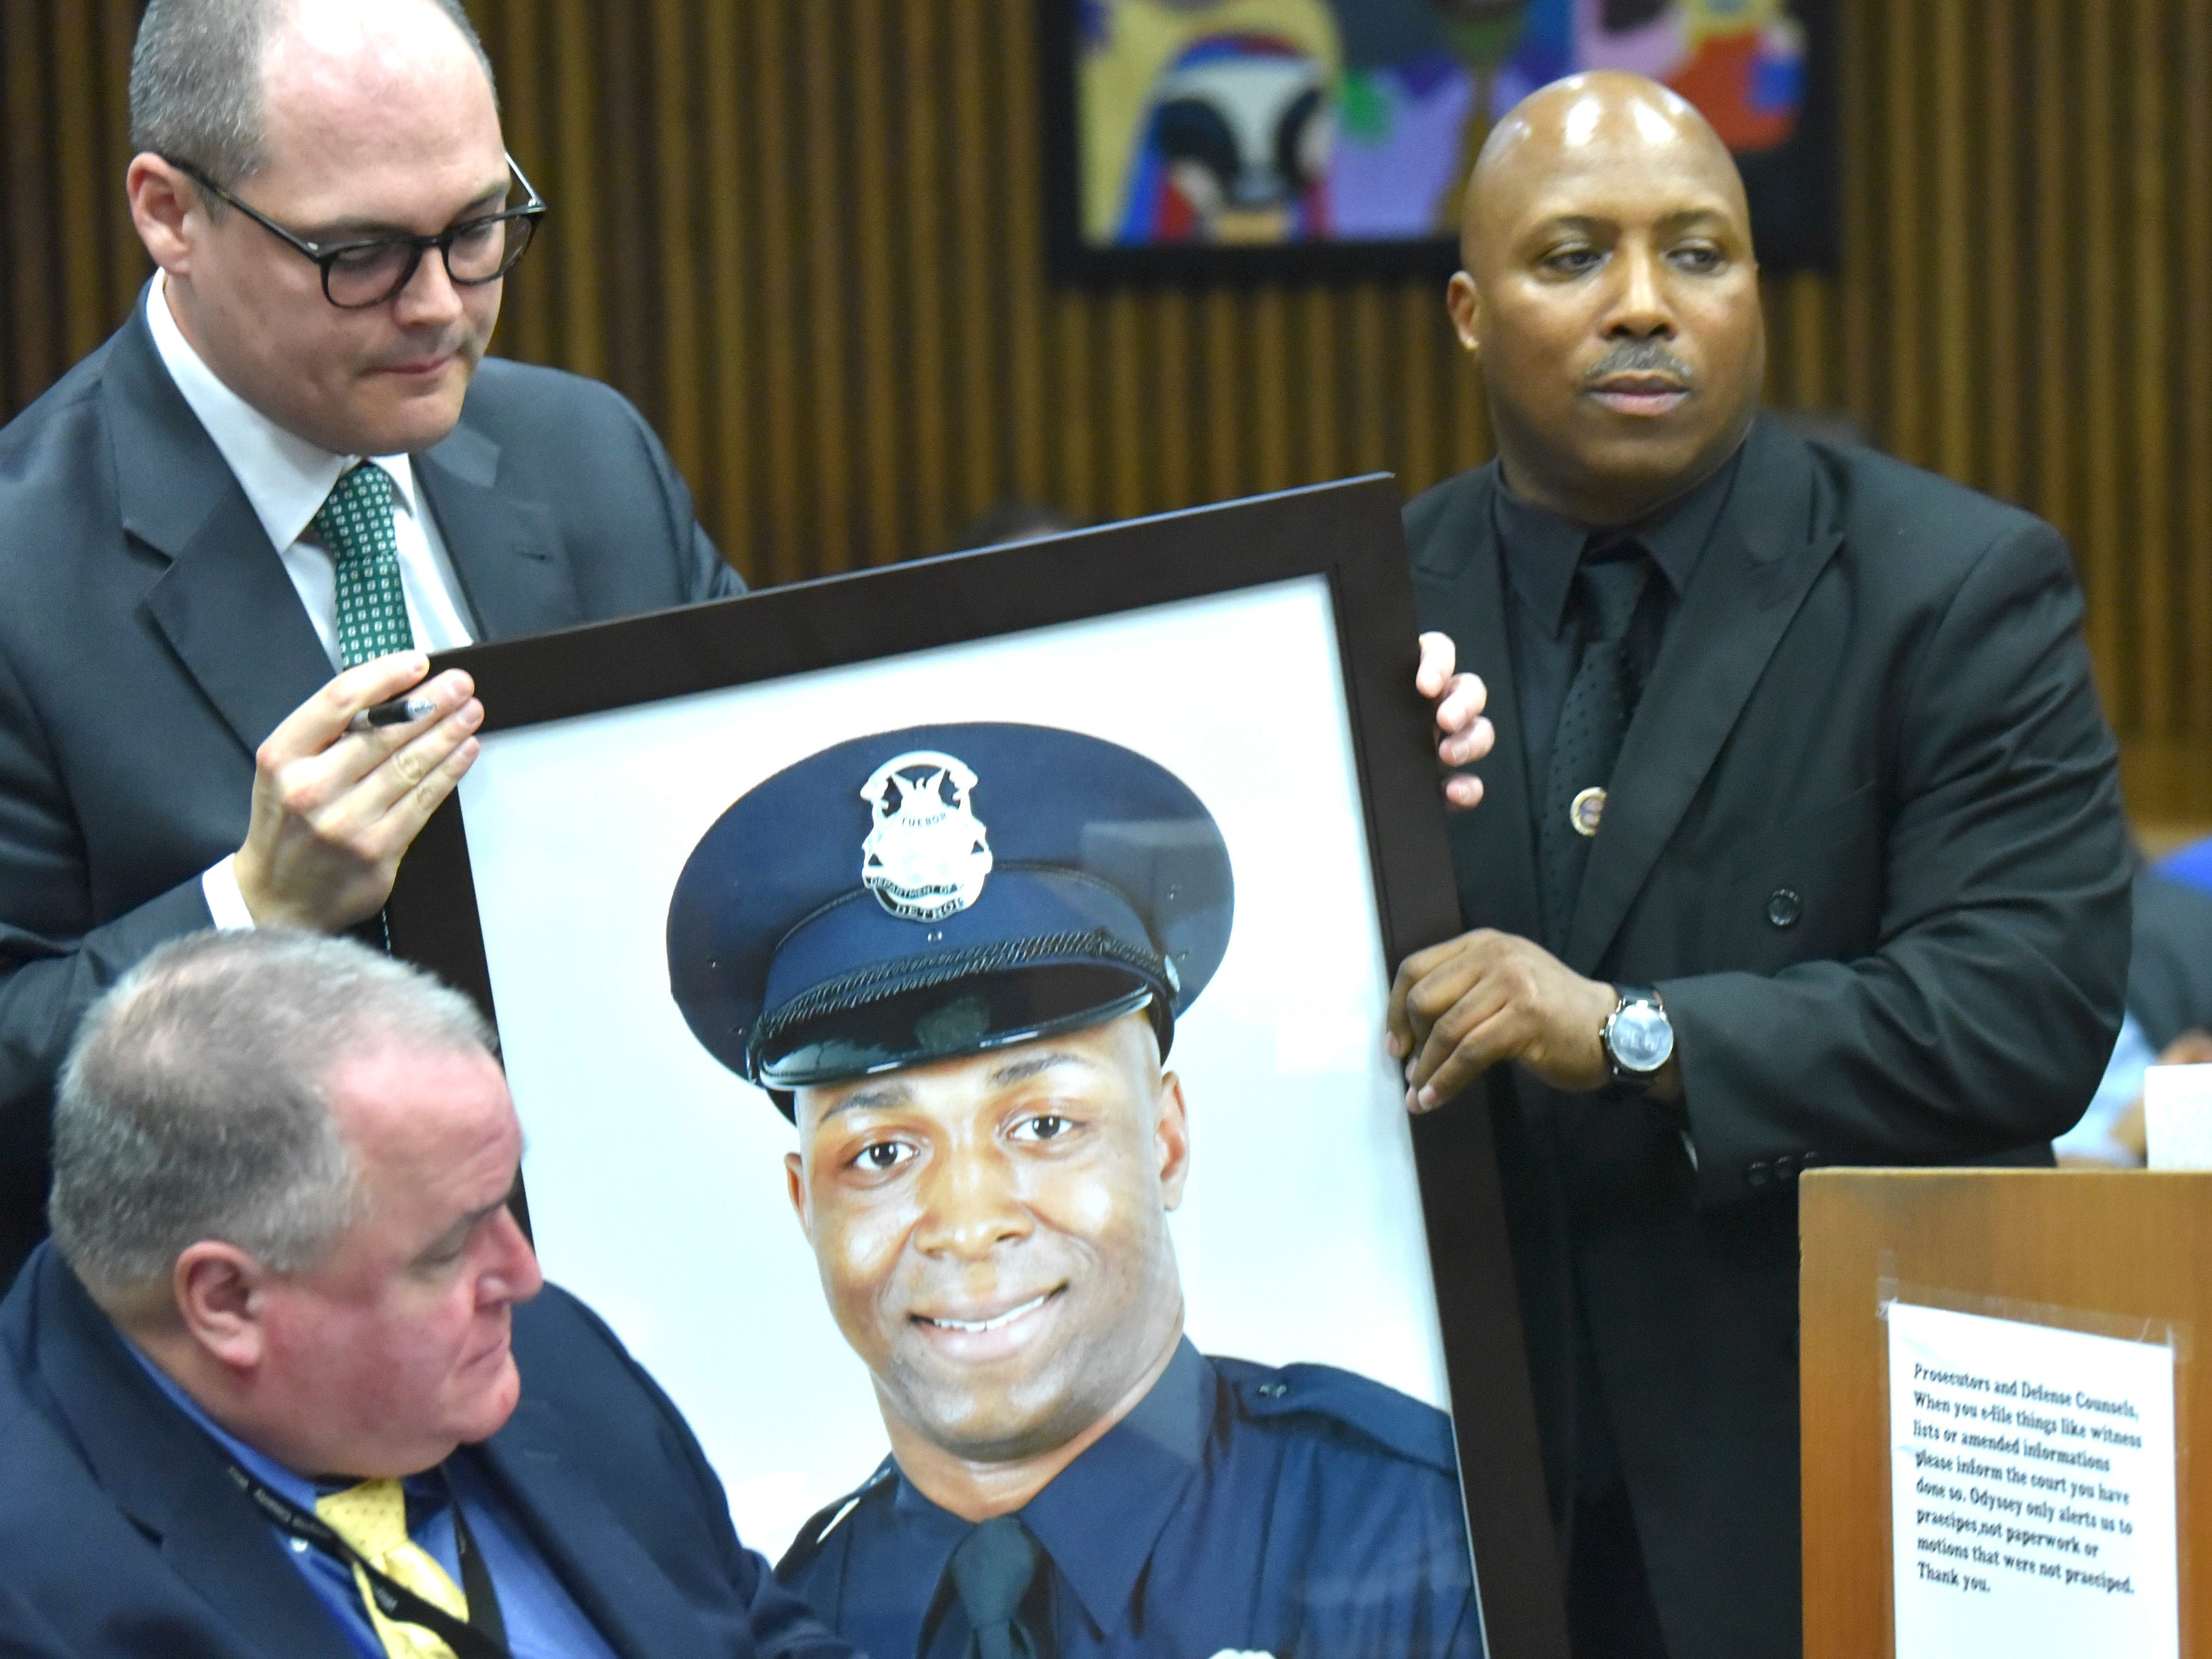 Detroit Police Officer Glenn Doss Sr., right, hands a portrait of his murdered DPD officer son, Glenn Doss Jr., to assistant prosecutor Matthew Penney, left, as he prepares to make his victim's impact statement.